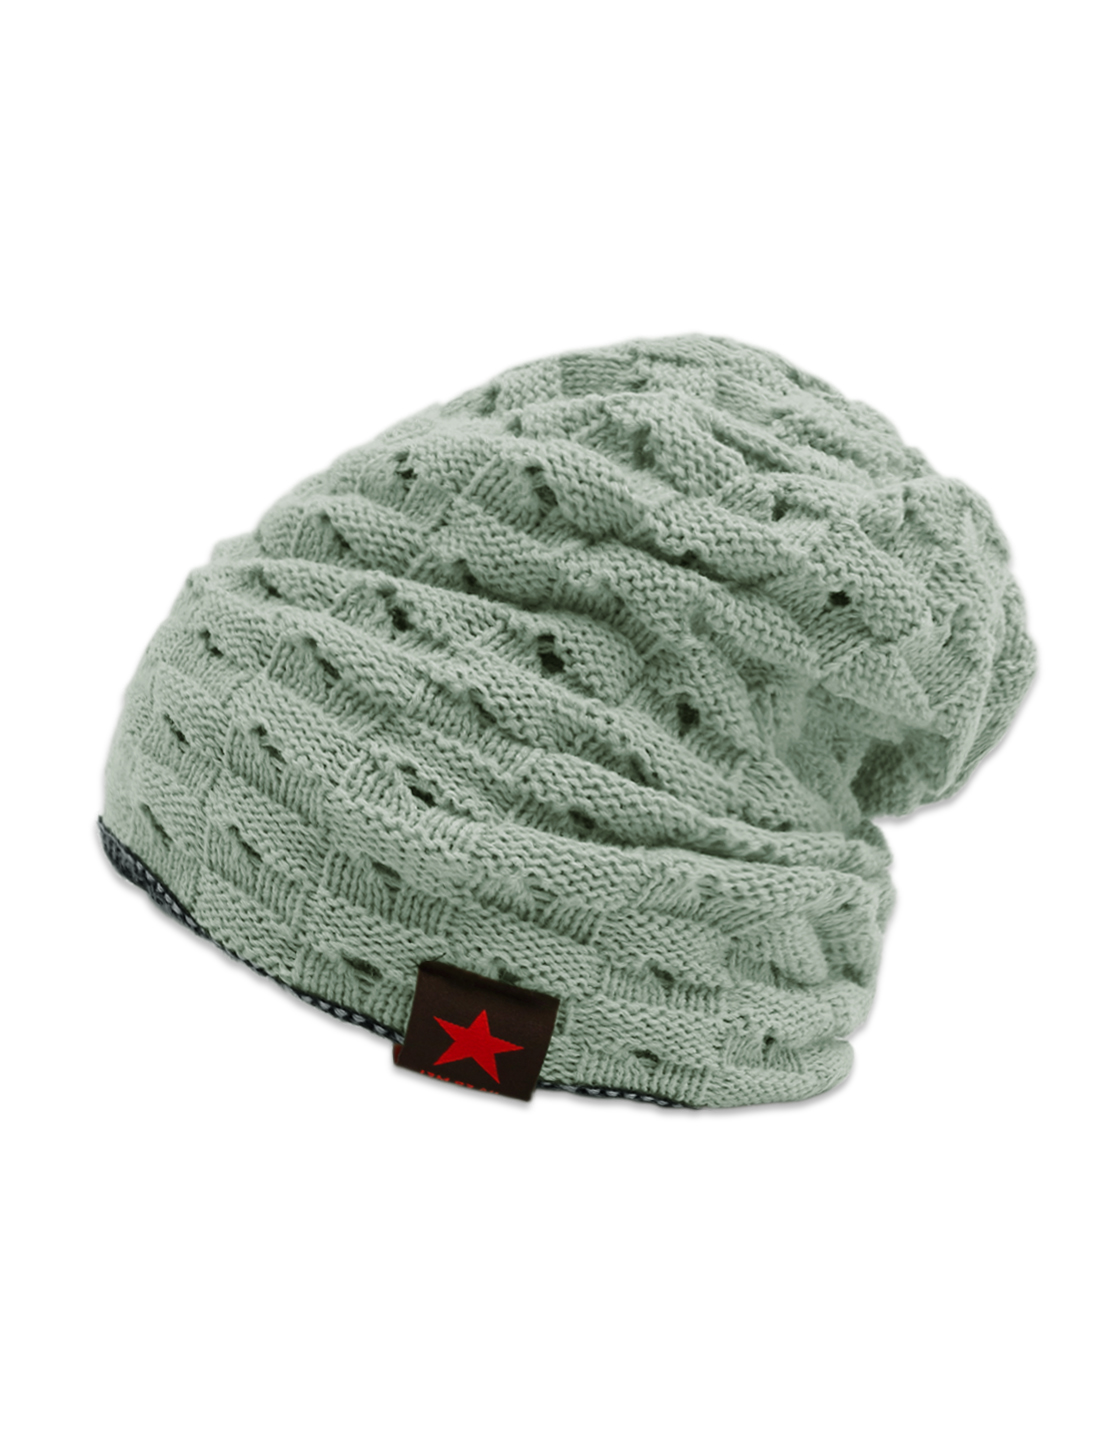 Unisex Hollow Out Design Reversible Knitted Beanie Hat Gray